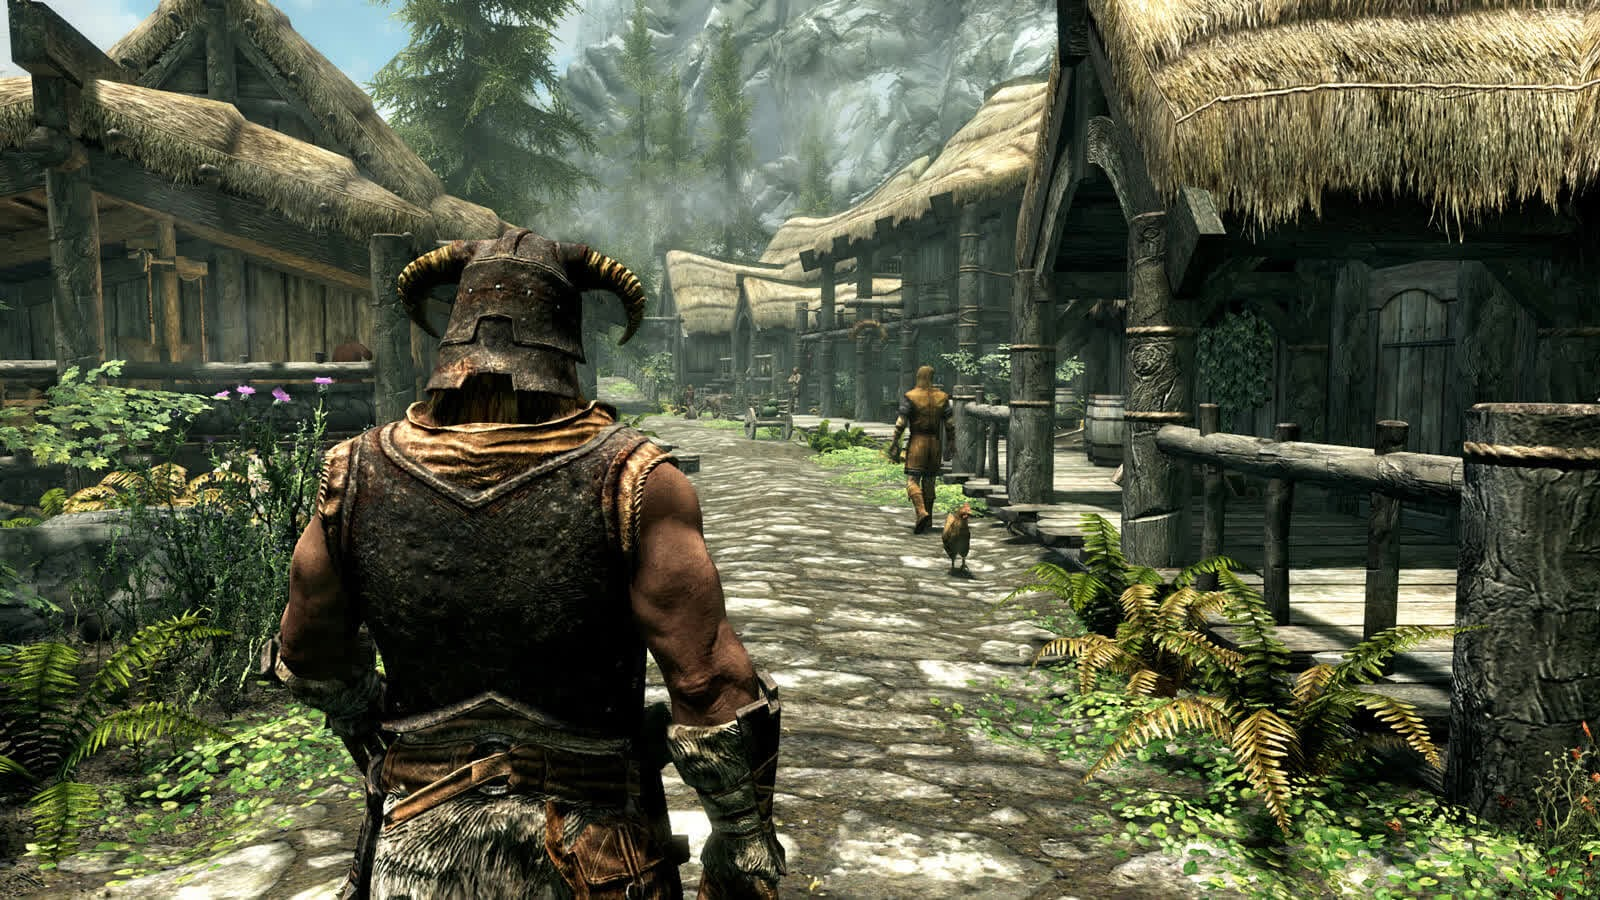 Open-ended games increasing replay value